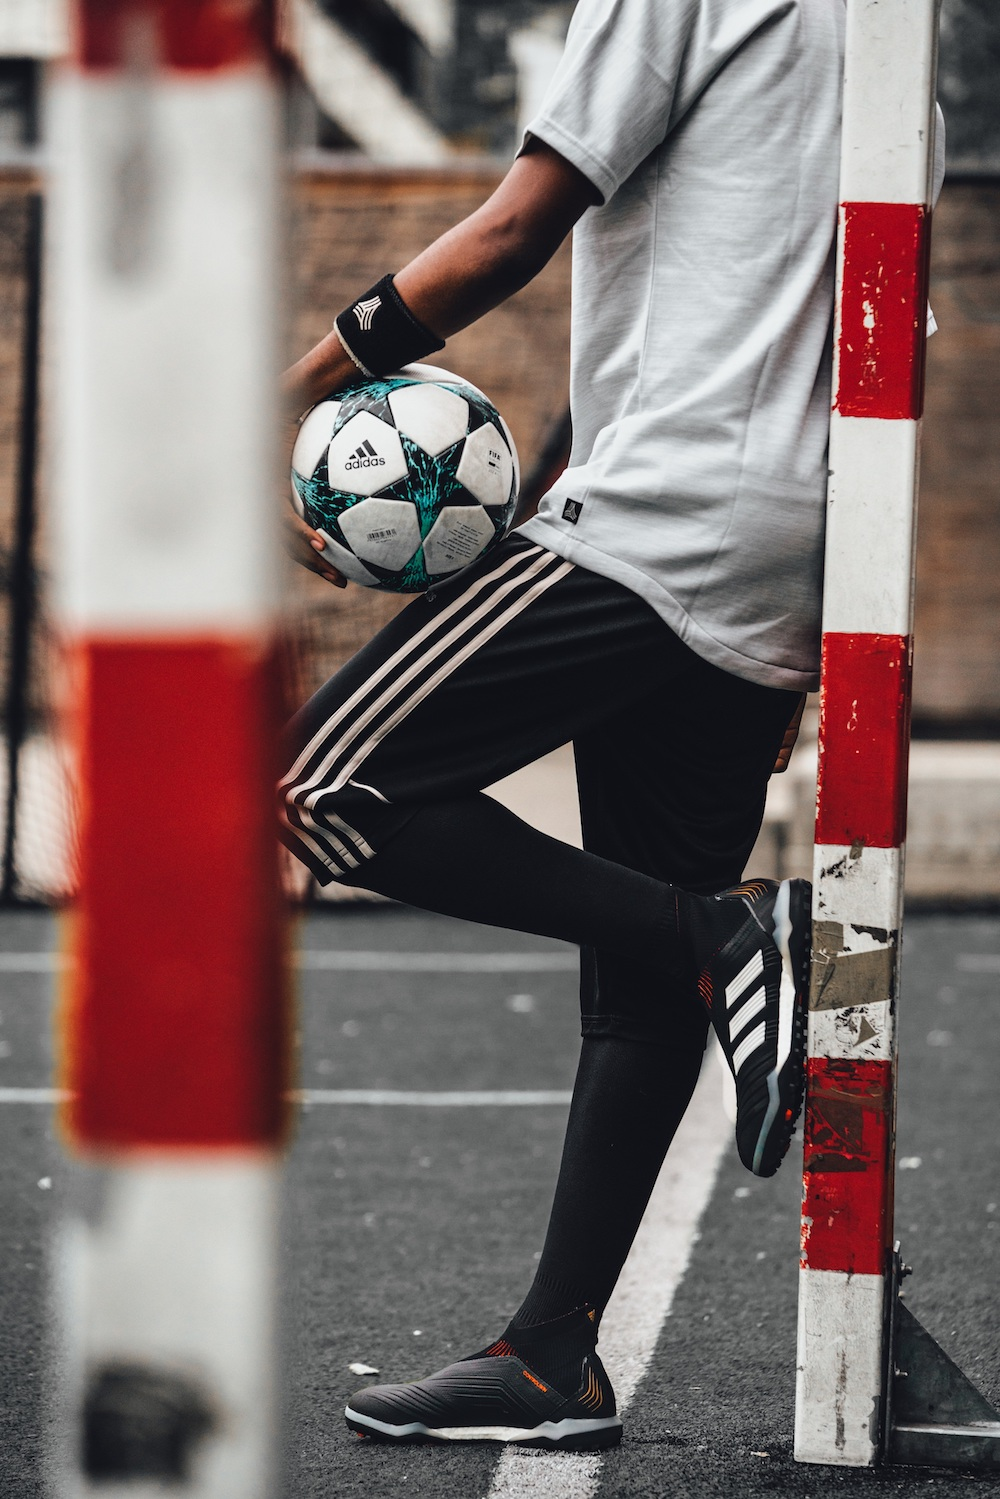 b4bada85115b The collection will be available from 29 November 2017 on adidas  ecommerce  platform (www.adidas.co.za football)